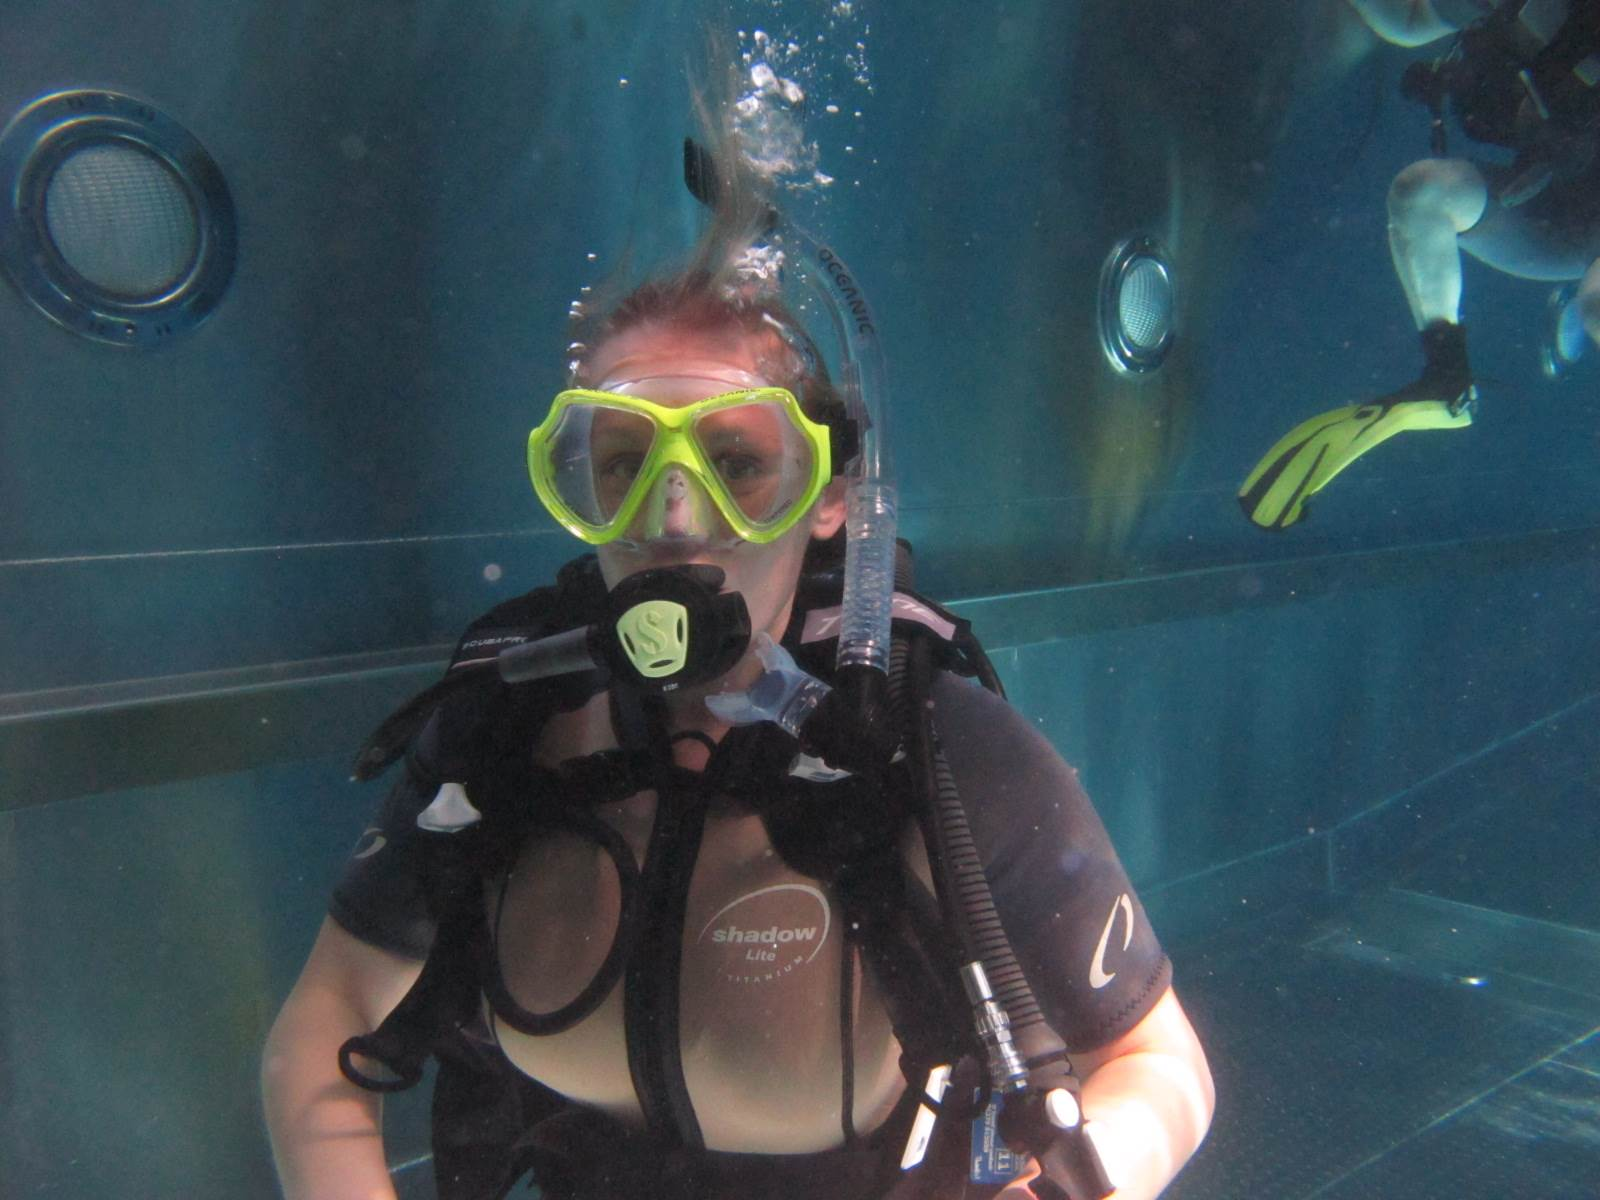 PADI Scuba lessons in our Bishop's Stortford, Hertfordshire dive pool